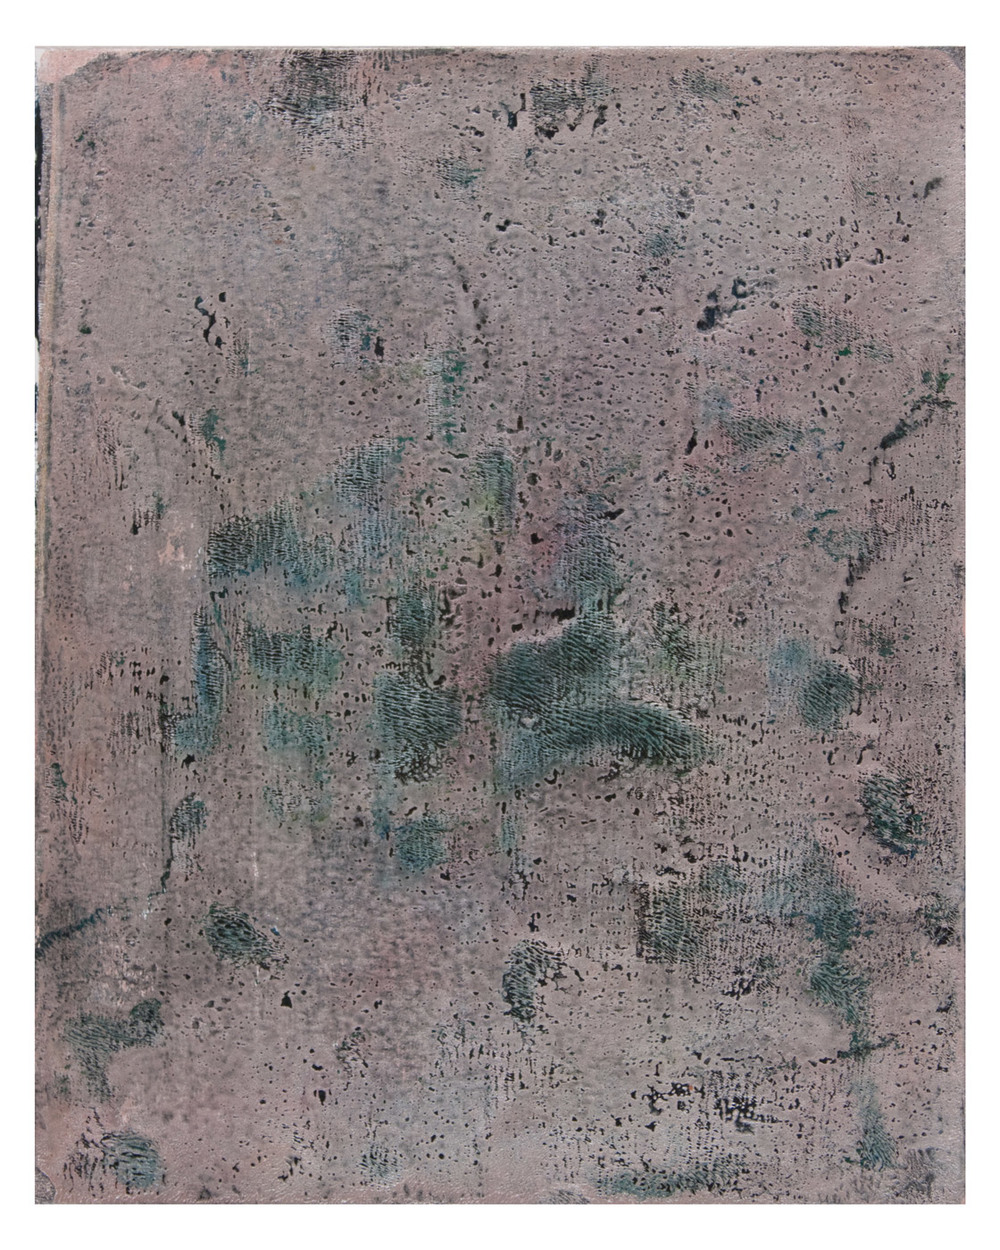 AZ#397 , acrylic and mixed media on paper, 2015, 10 x 8 in.